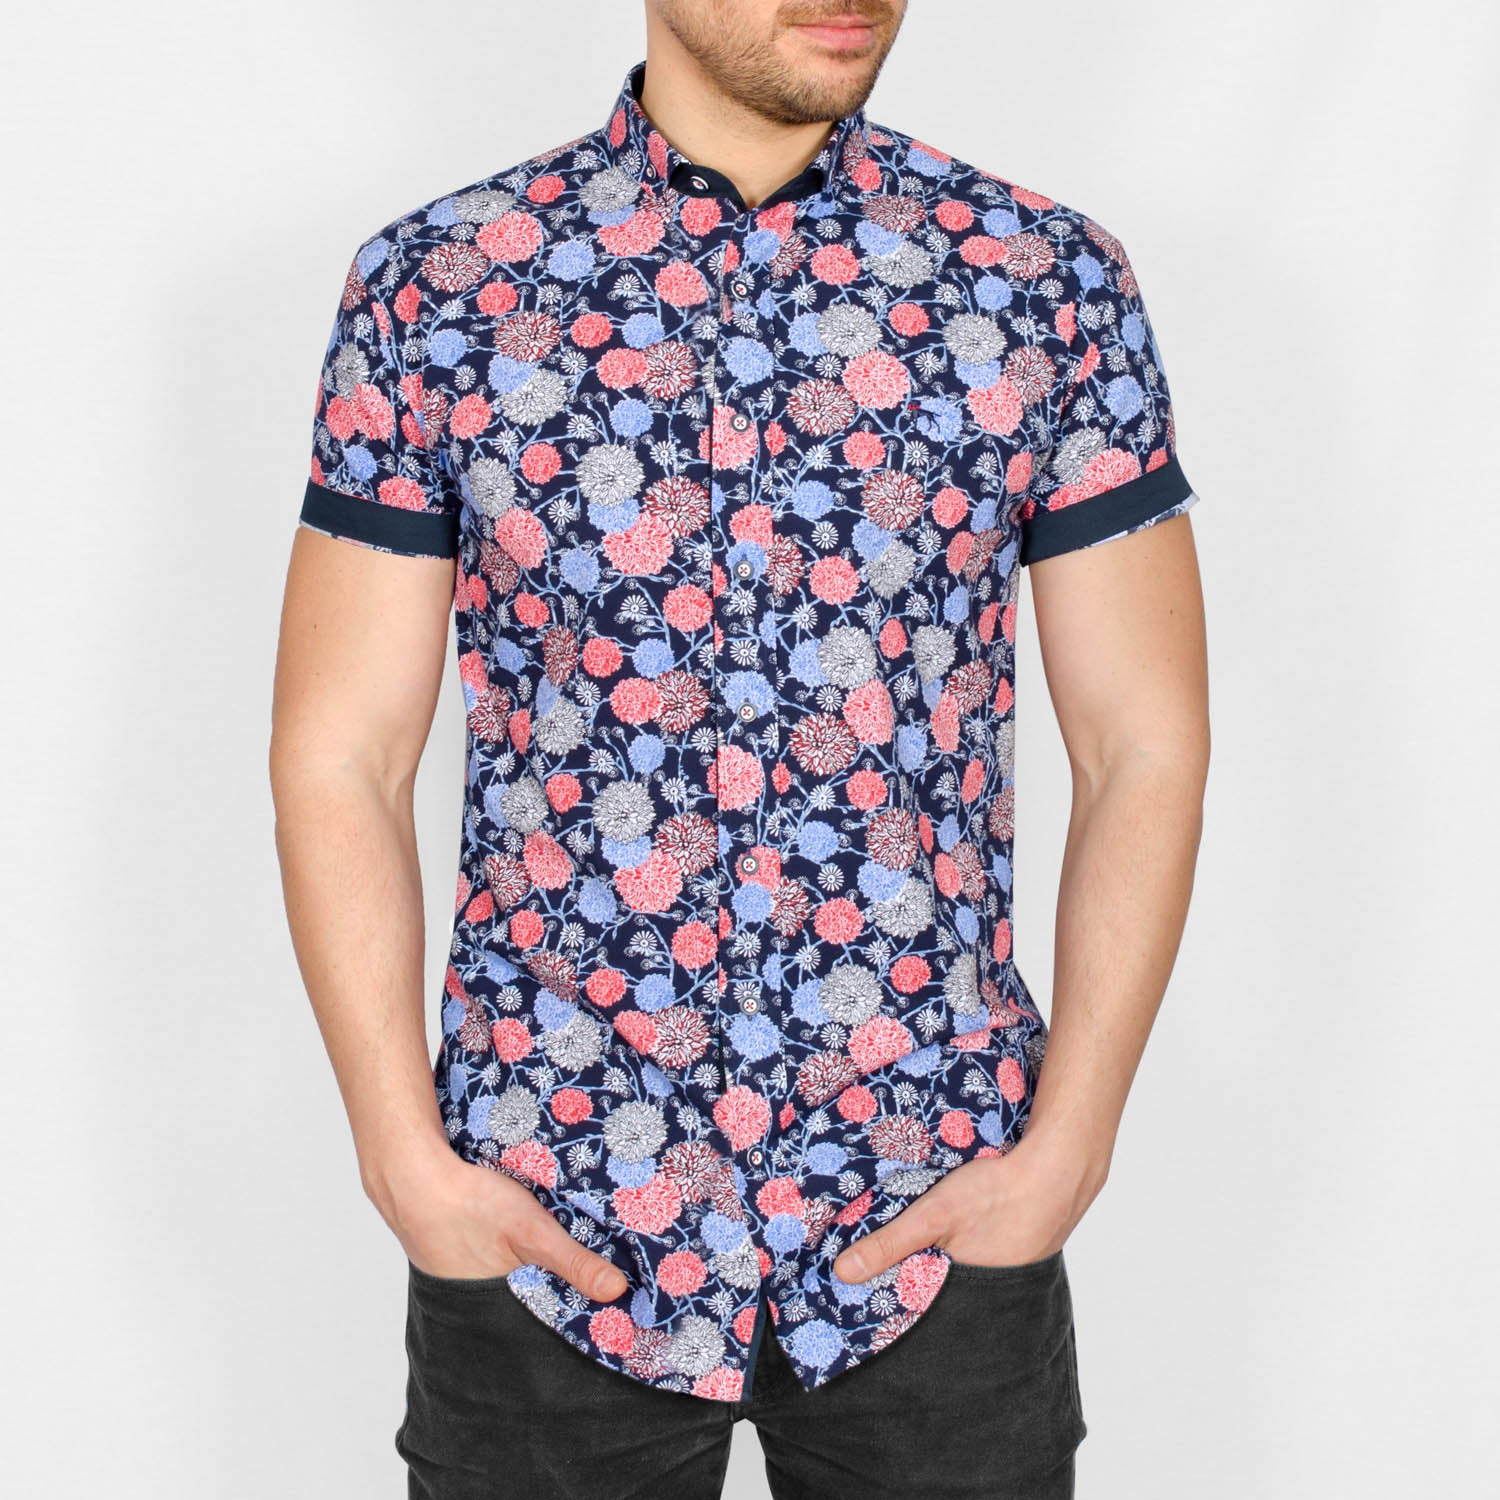 Bewley and Ritch Clover Floral Print Shirt